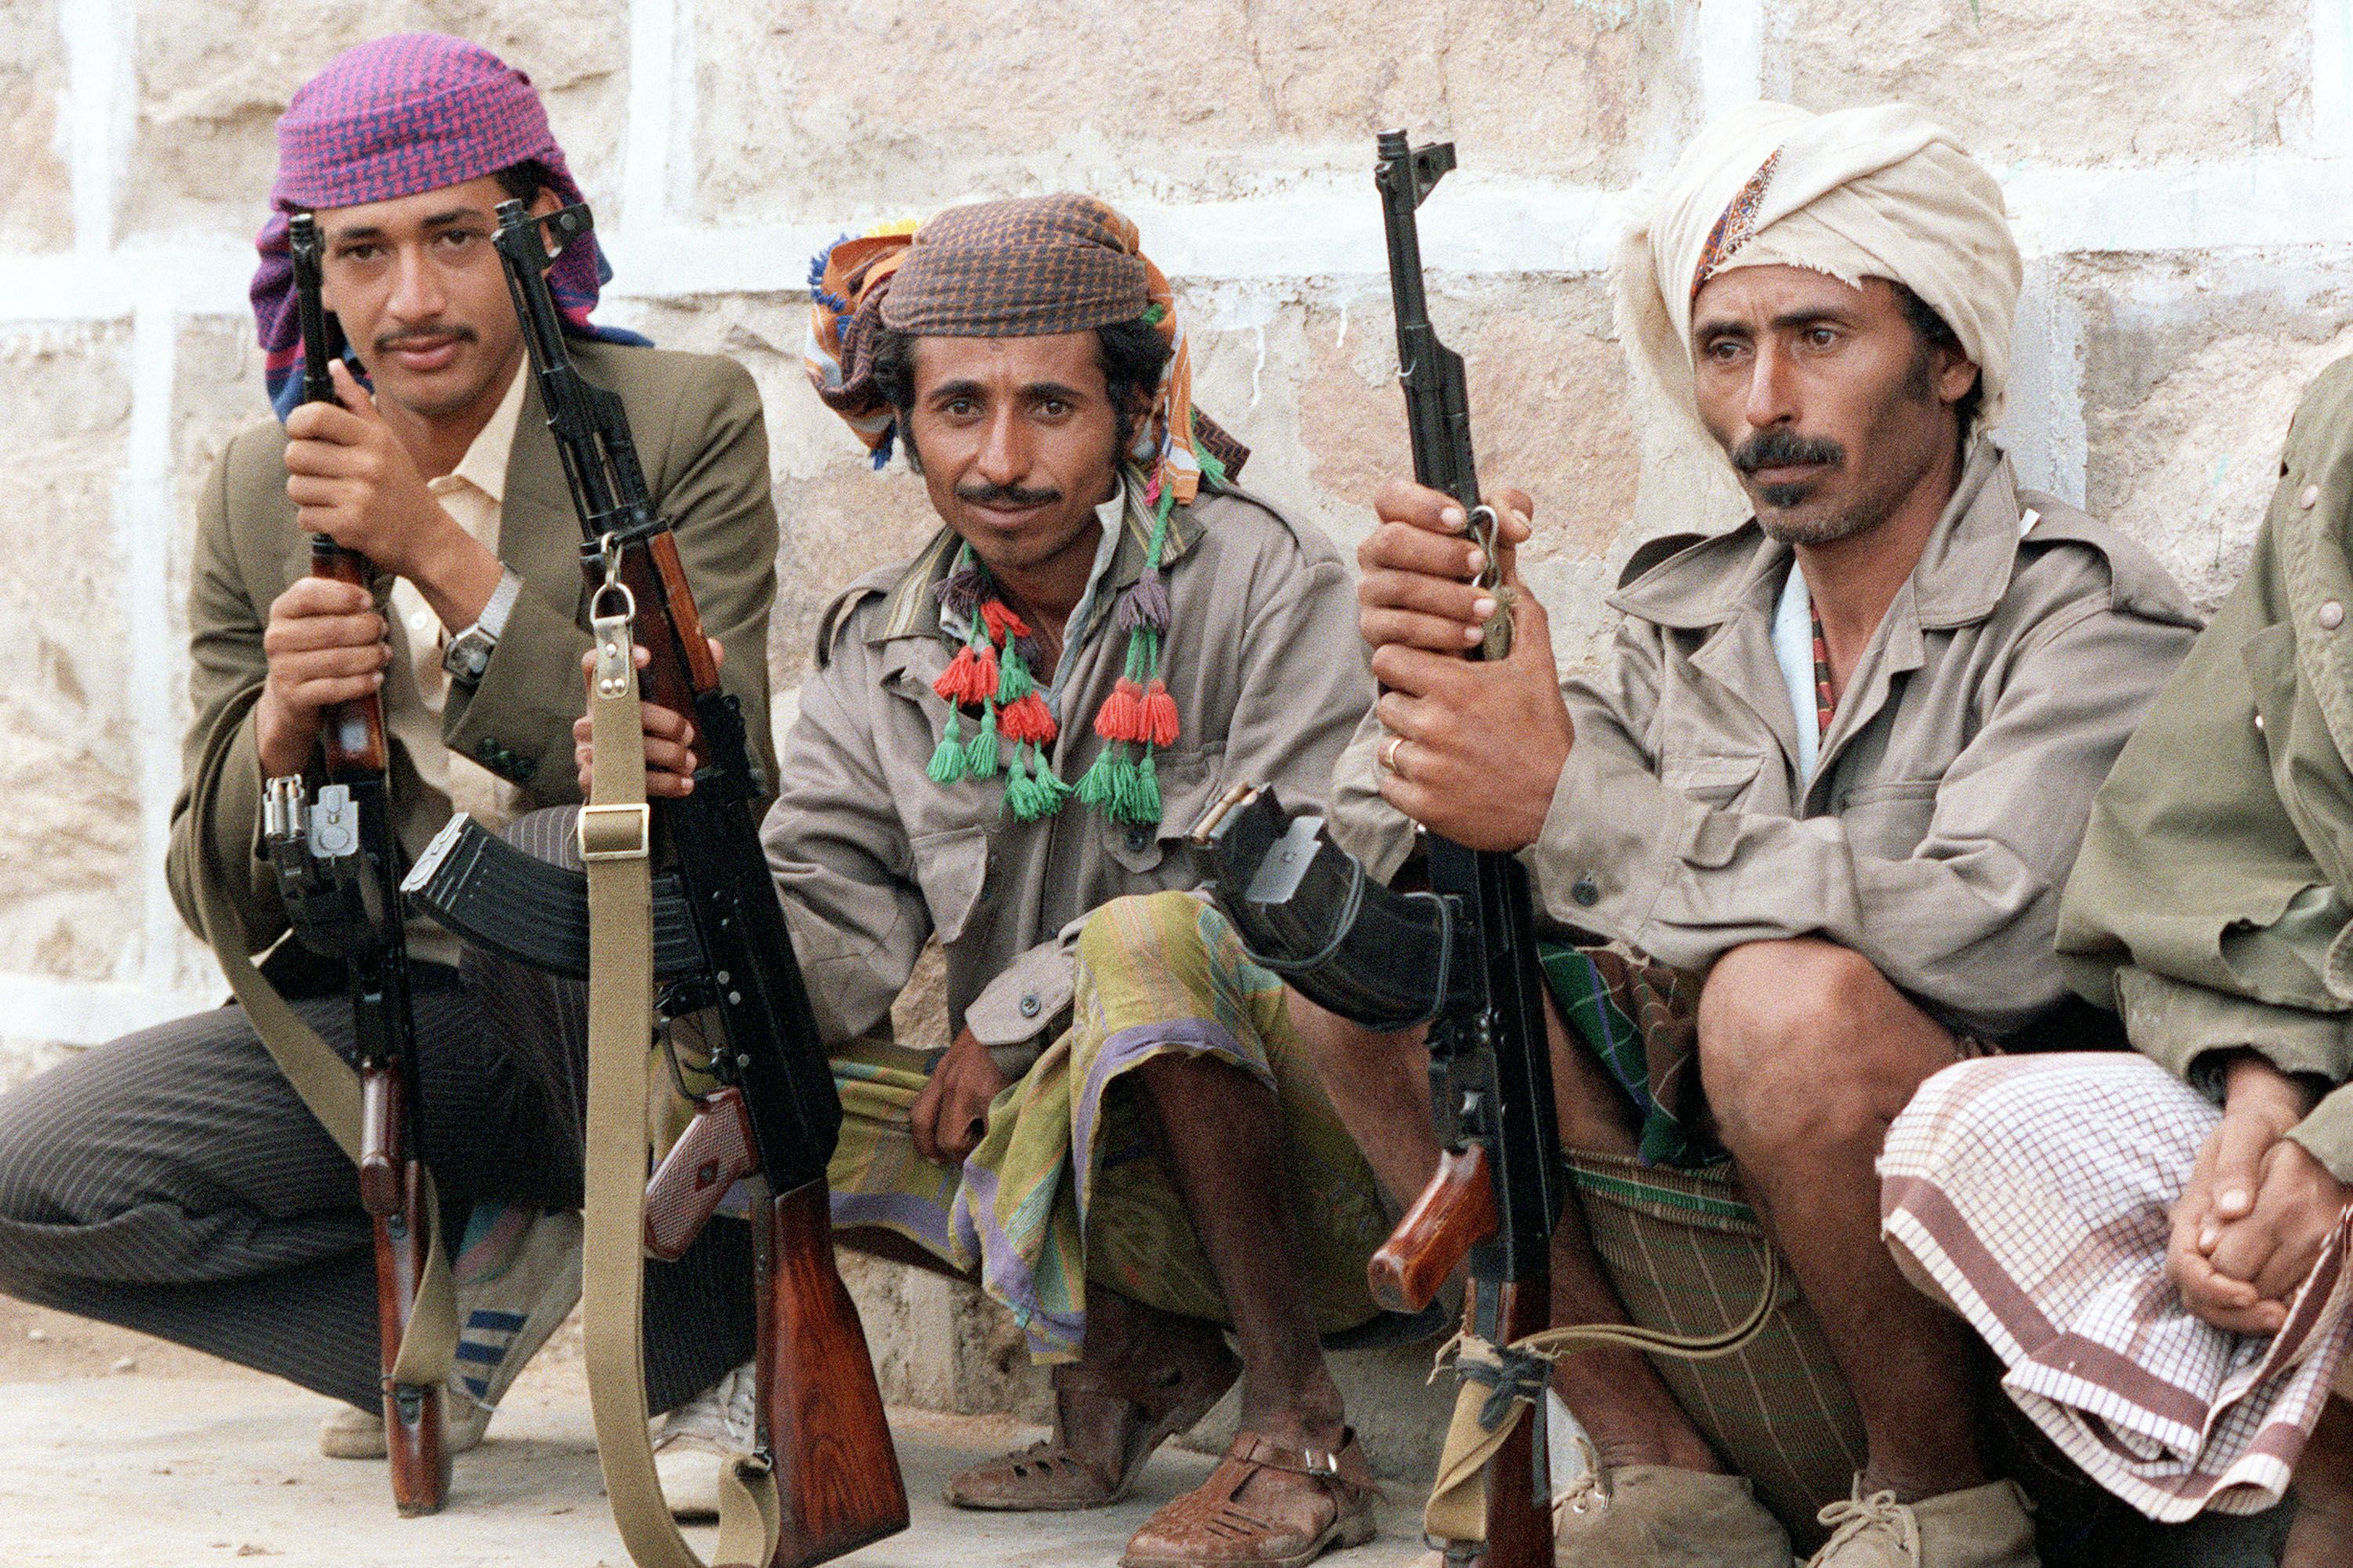 Militiamen, partisan of Yemen Socialist Party senior leader Abdul Fattah Ismail, pose with their guns, on 2 February 1986, near a checkpoint in Aden (AFP